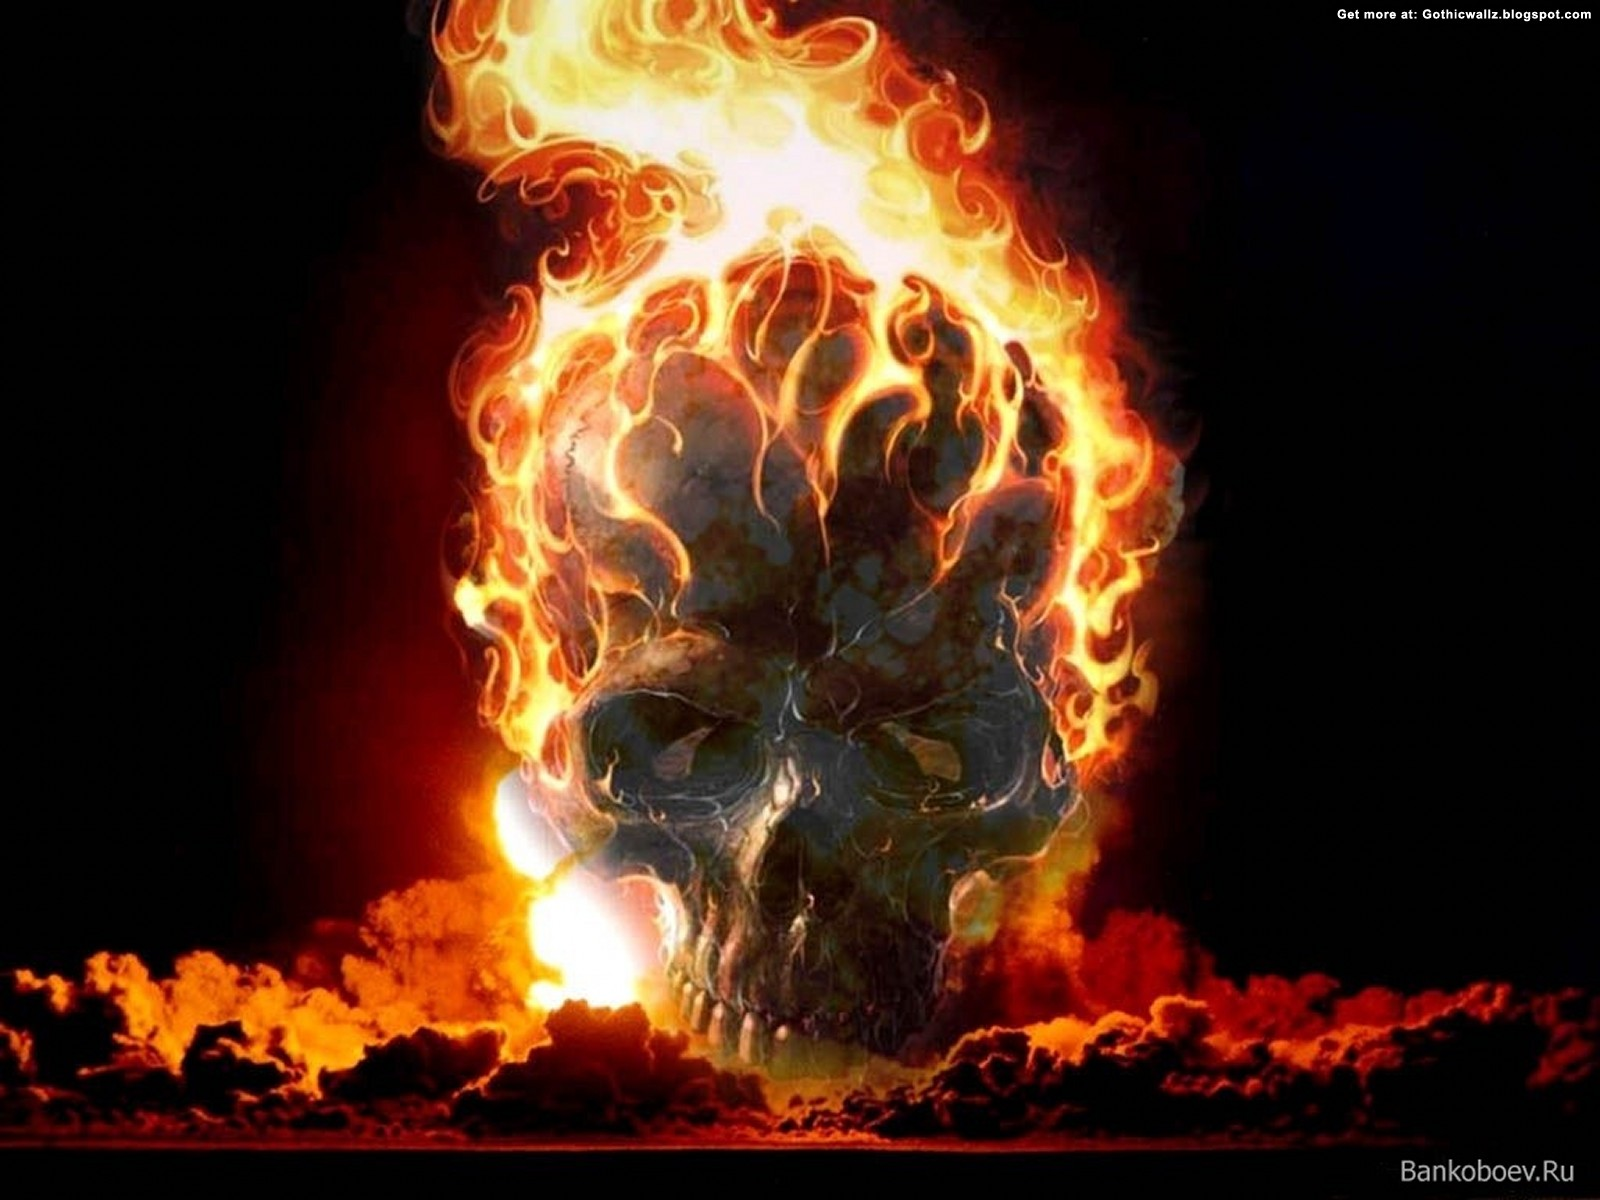 Skull on Fire | Gothic Wallpaper Download